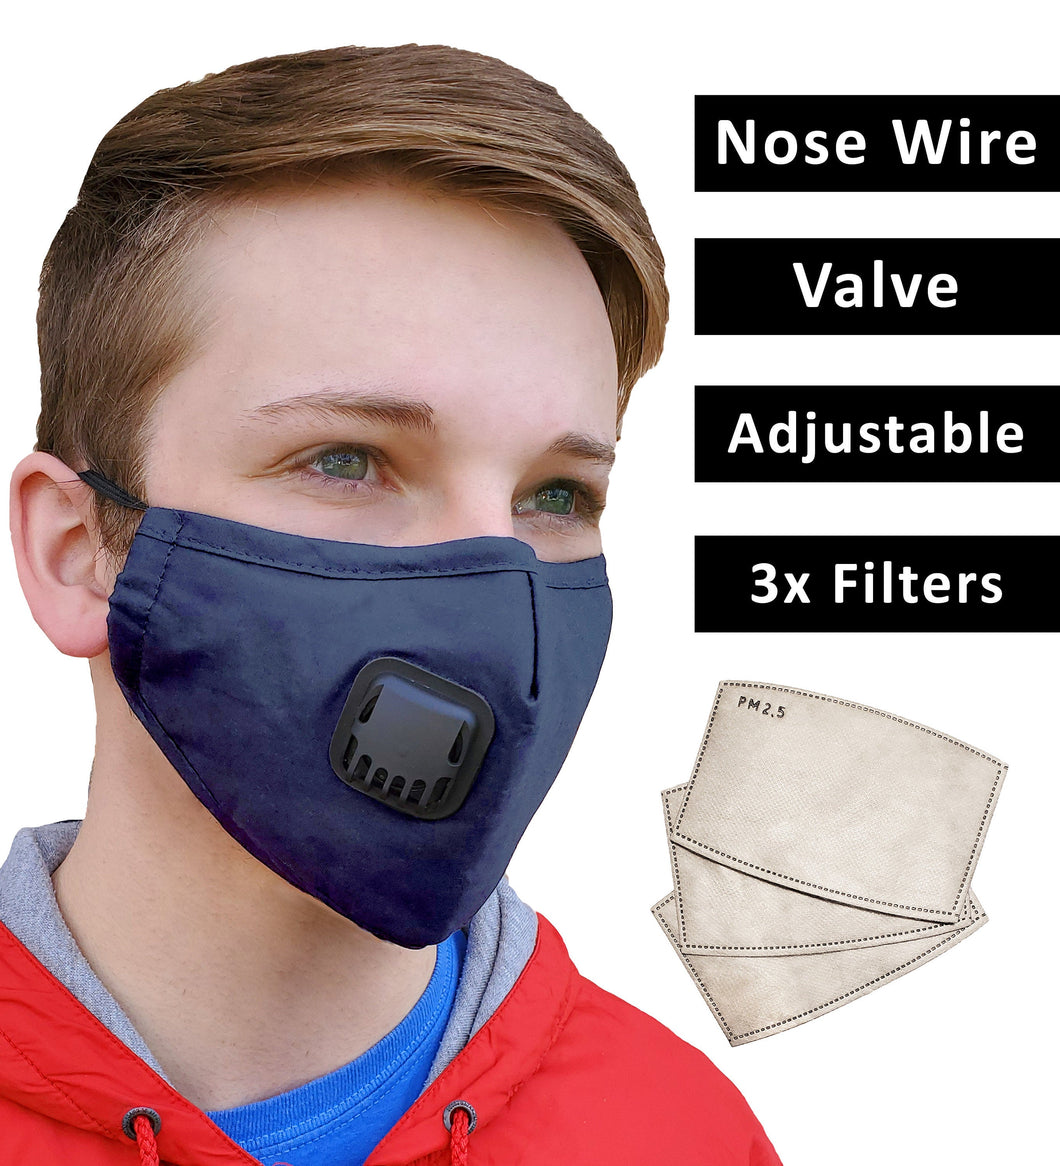 Blue Face Mask + 3 Filters PM 2.5, Cotton, Adjustable Elastic Earloops Metal Nose Clip, Re-Usable, Small, Medium Adult, Fast Shipping USA